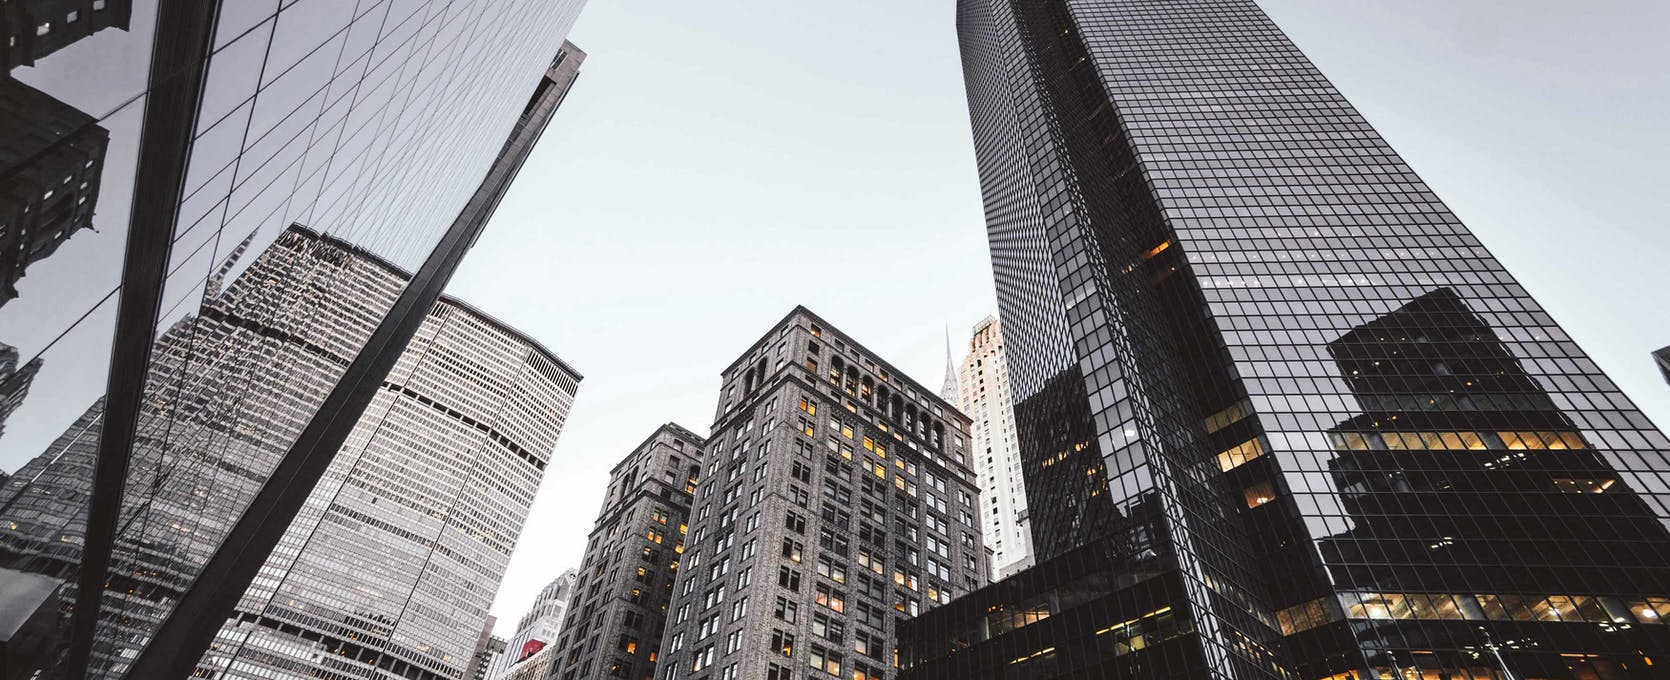 Commercial real estate properties in city